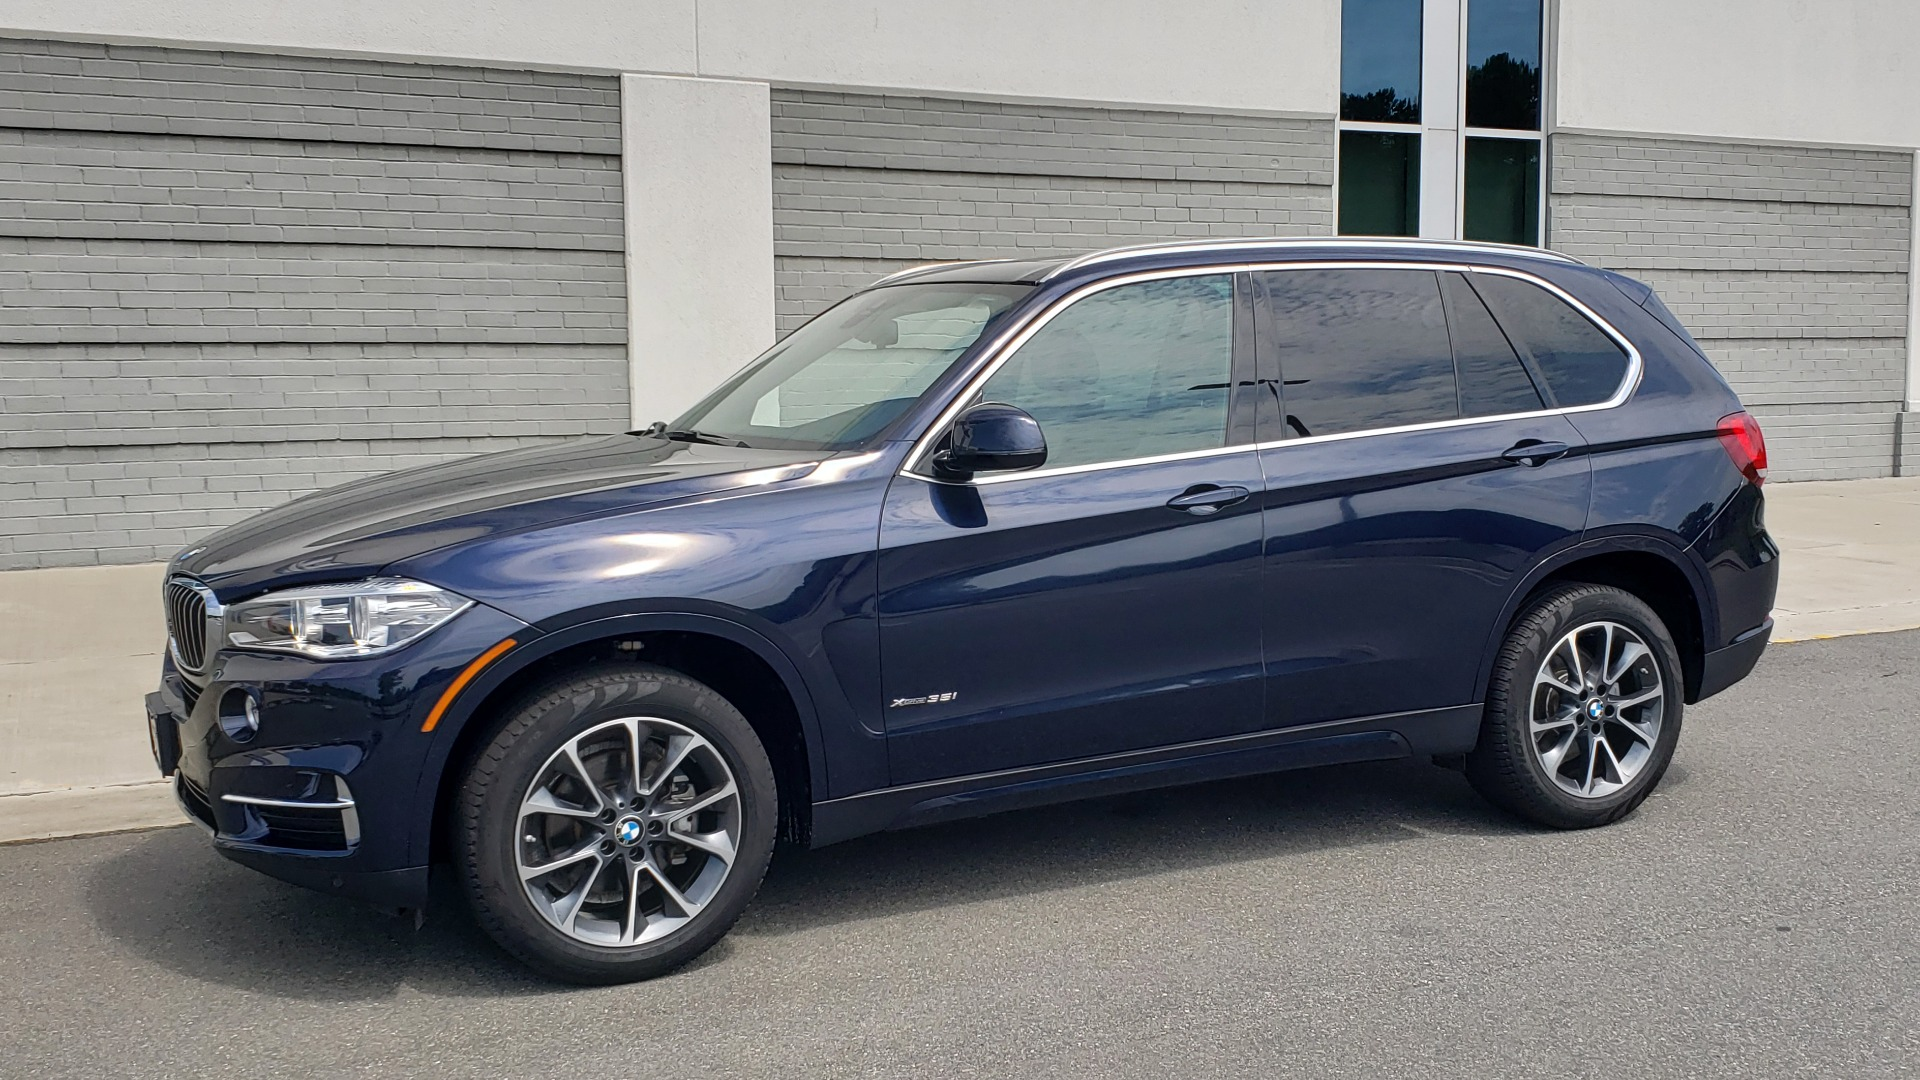 Used 2018 BMW X5 XDRIVE35I PREMIUM / LUXURY / DRVR ASST / HUD / LANE WARNING / REARVIEW for sale $43,695 at Formula Imports in Charlotte NC 28227 4